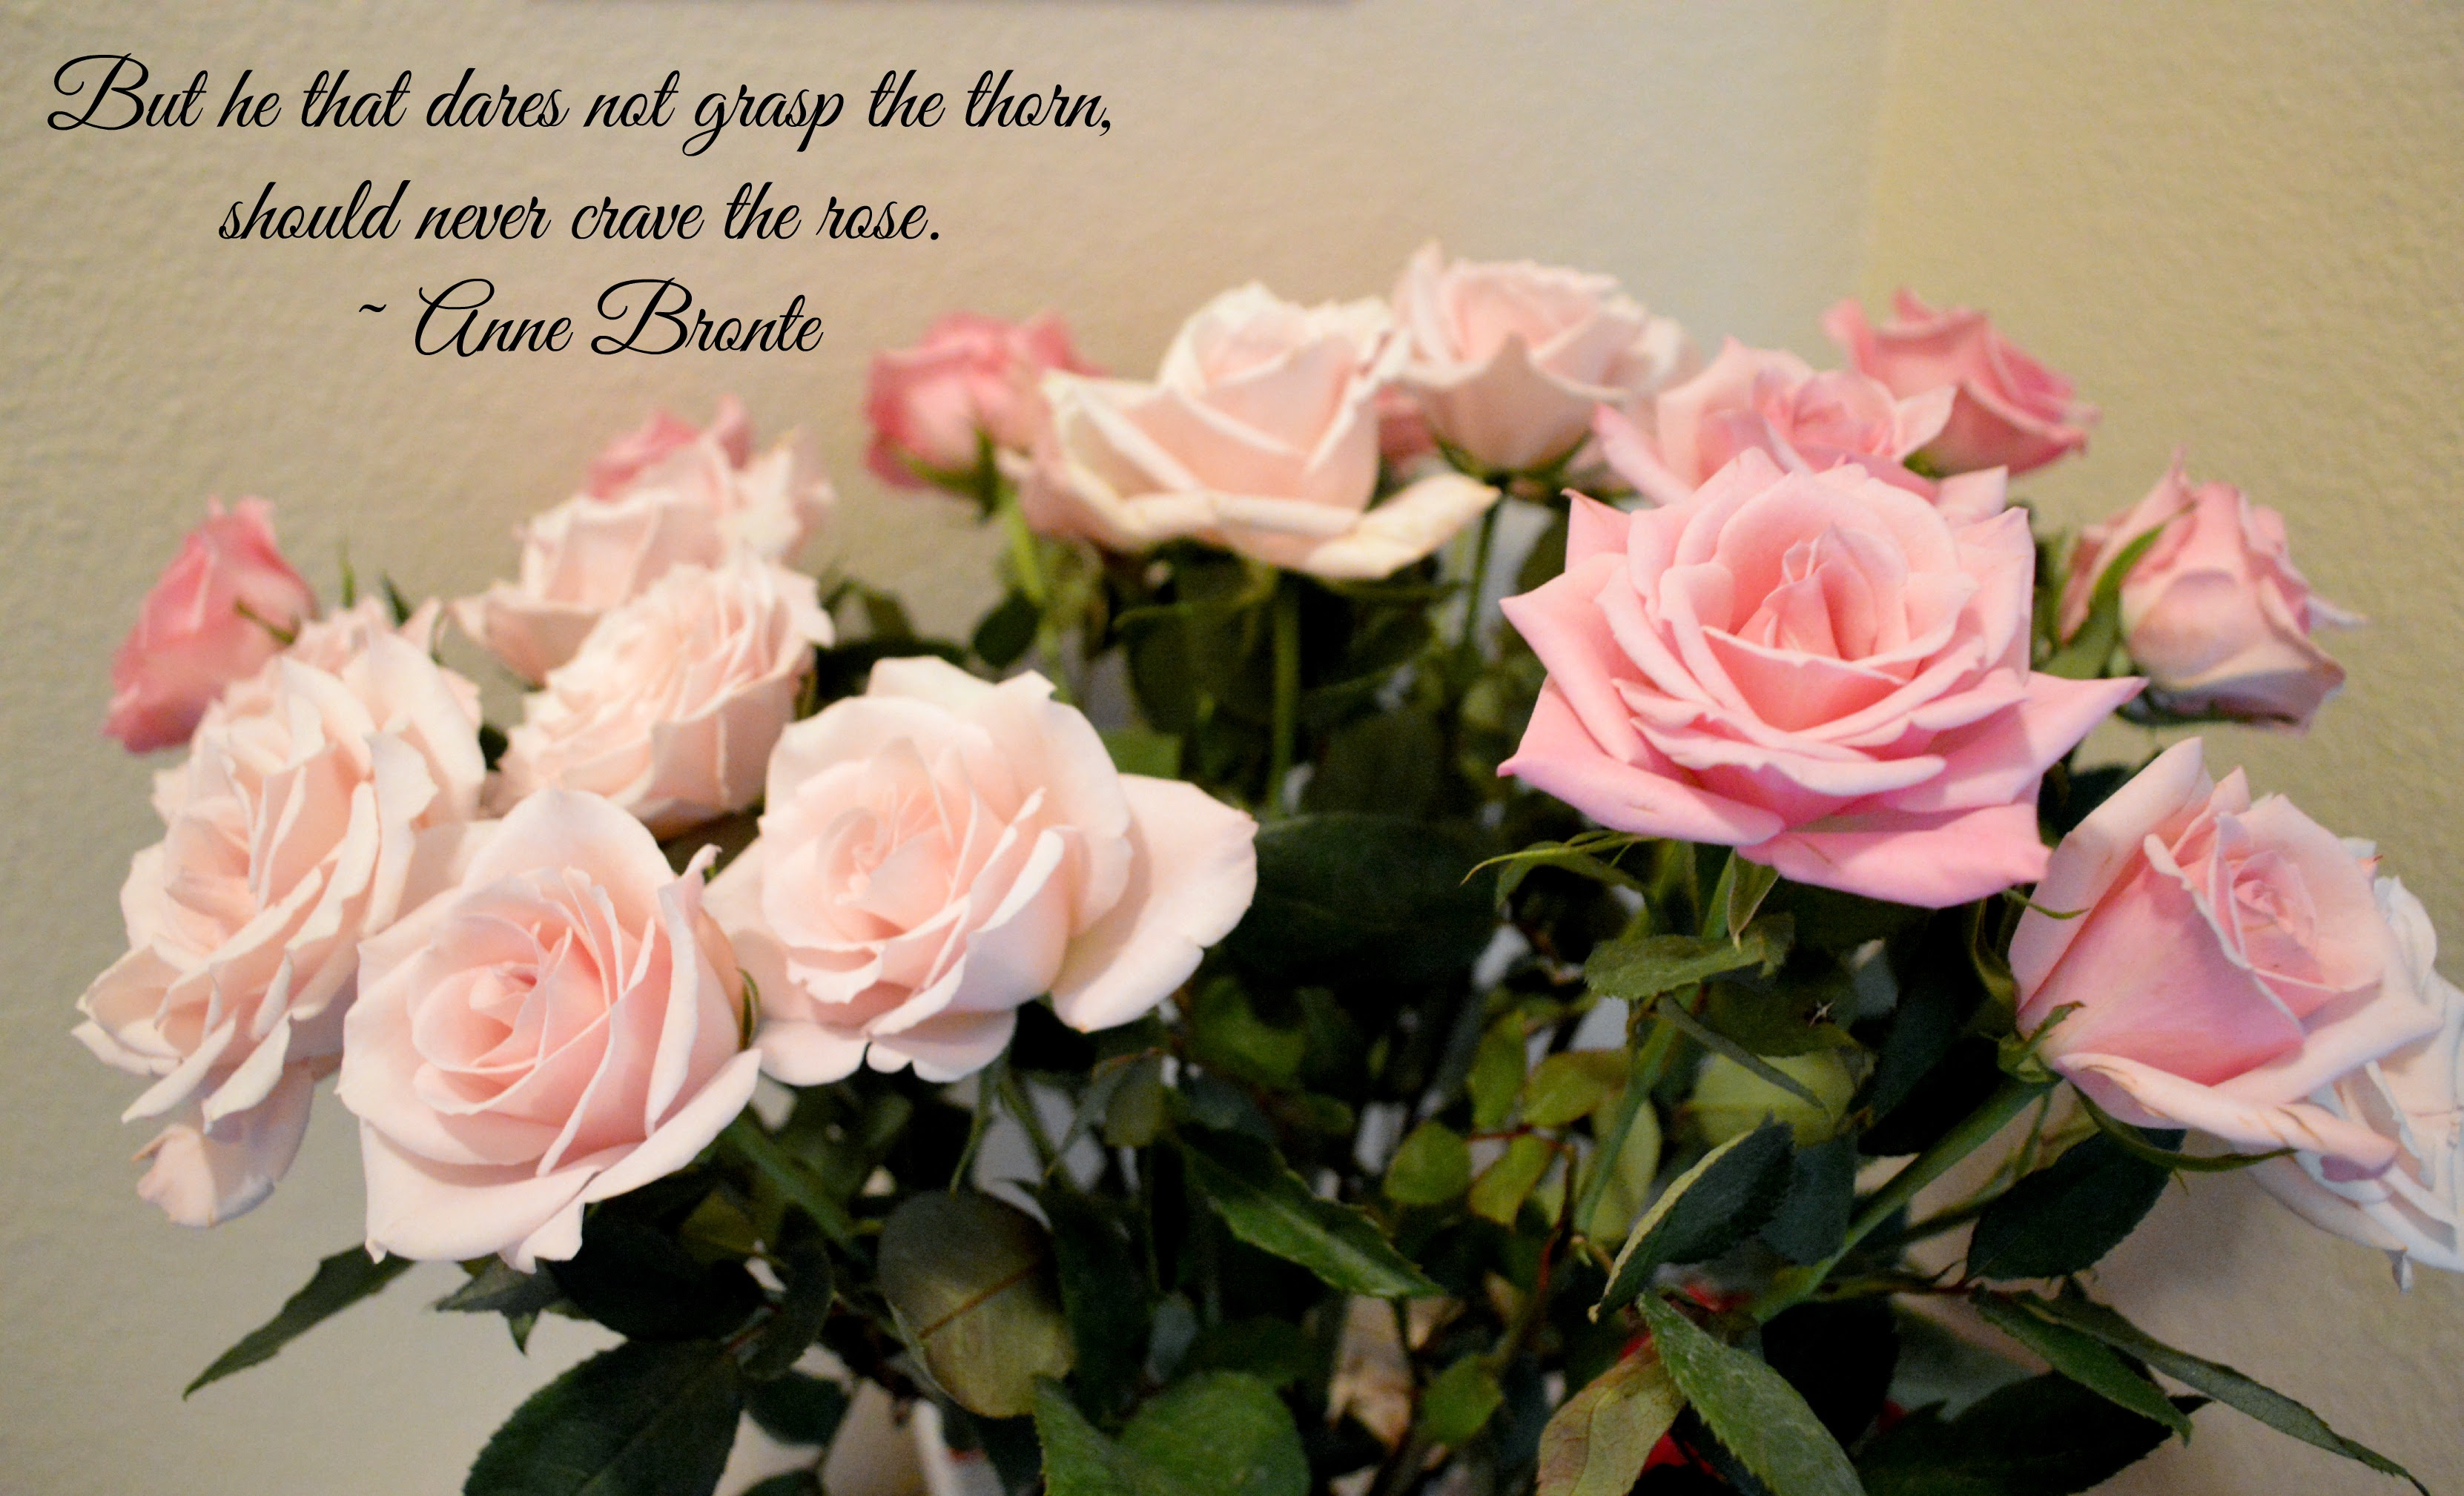 Quotes About Rose Garden 57 Quotes